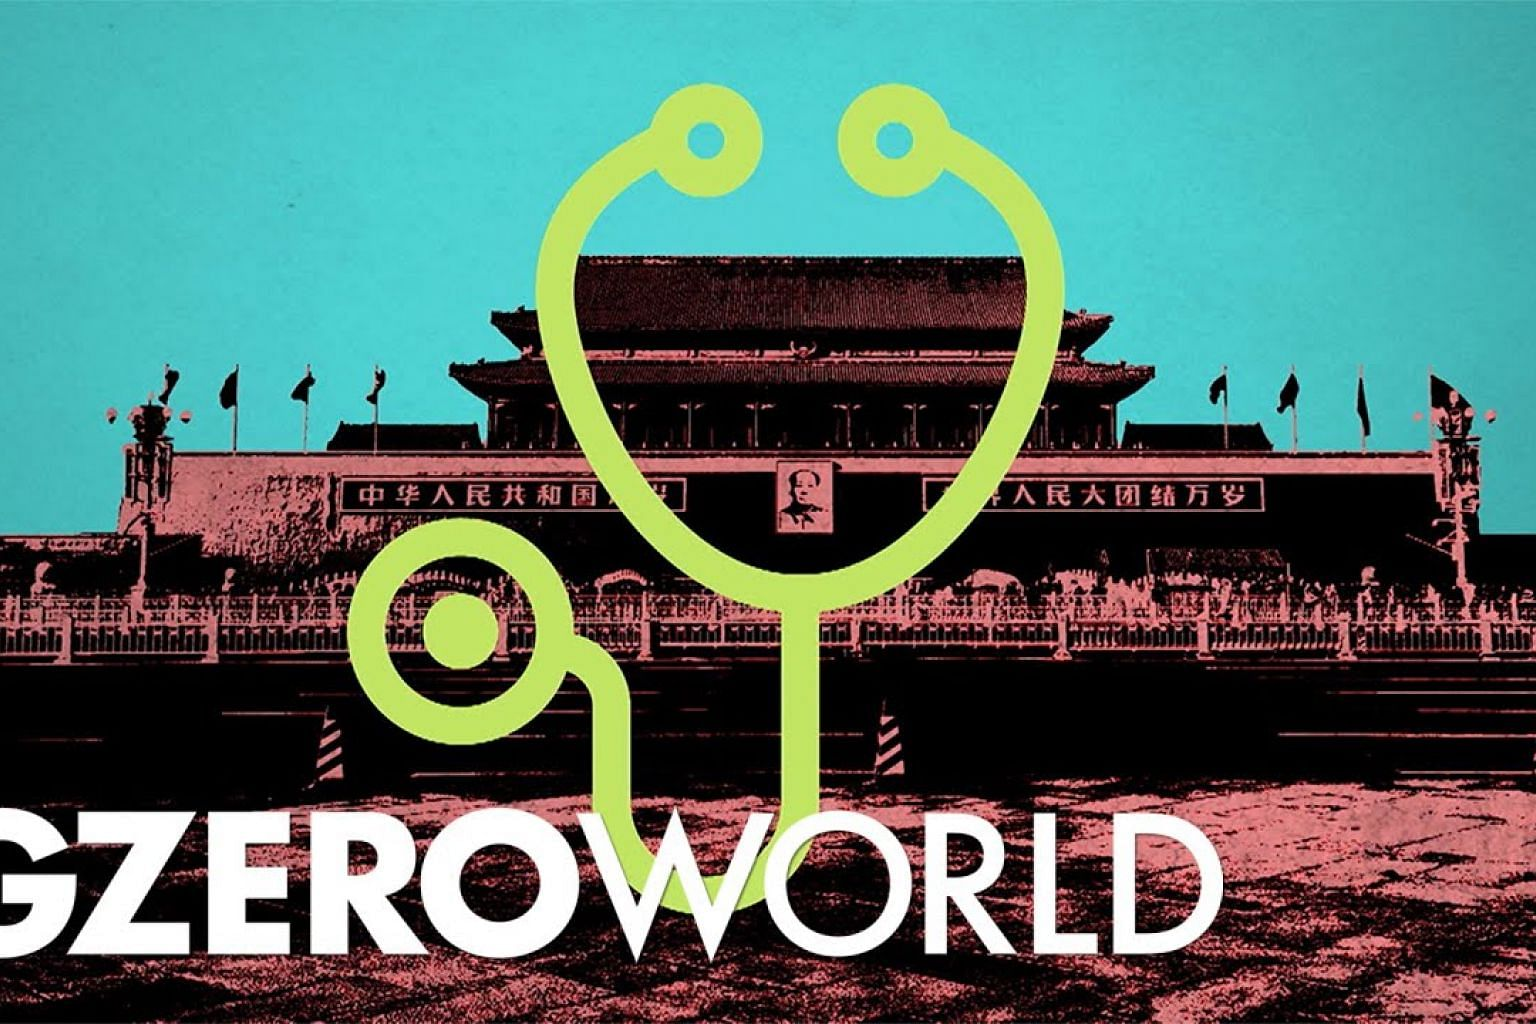 Ian Bremmer: US vs China - a Relationship Further Strained by Coronavirus Crisis | GZERO World